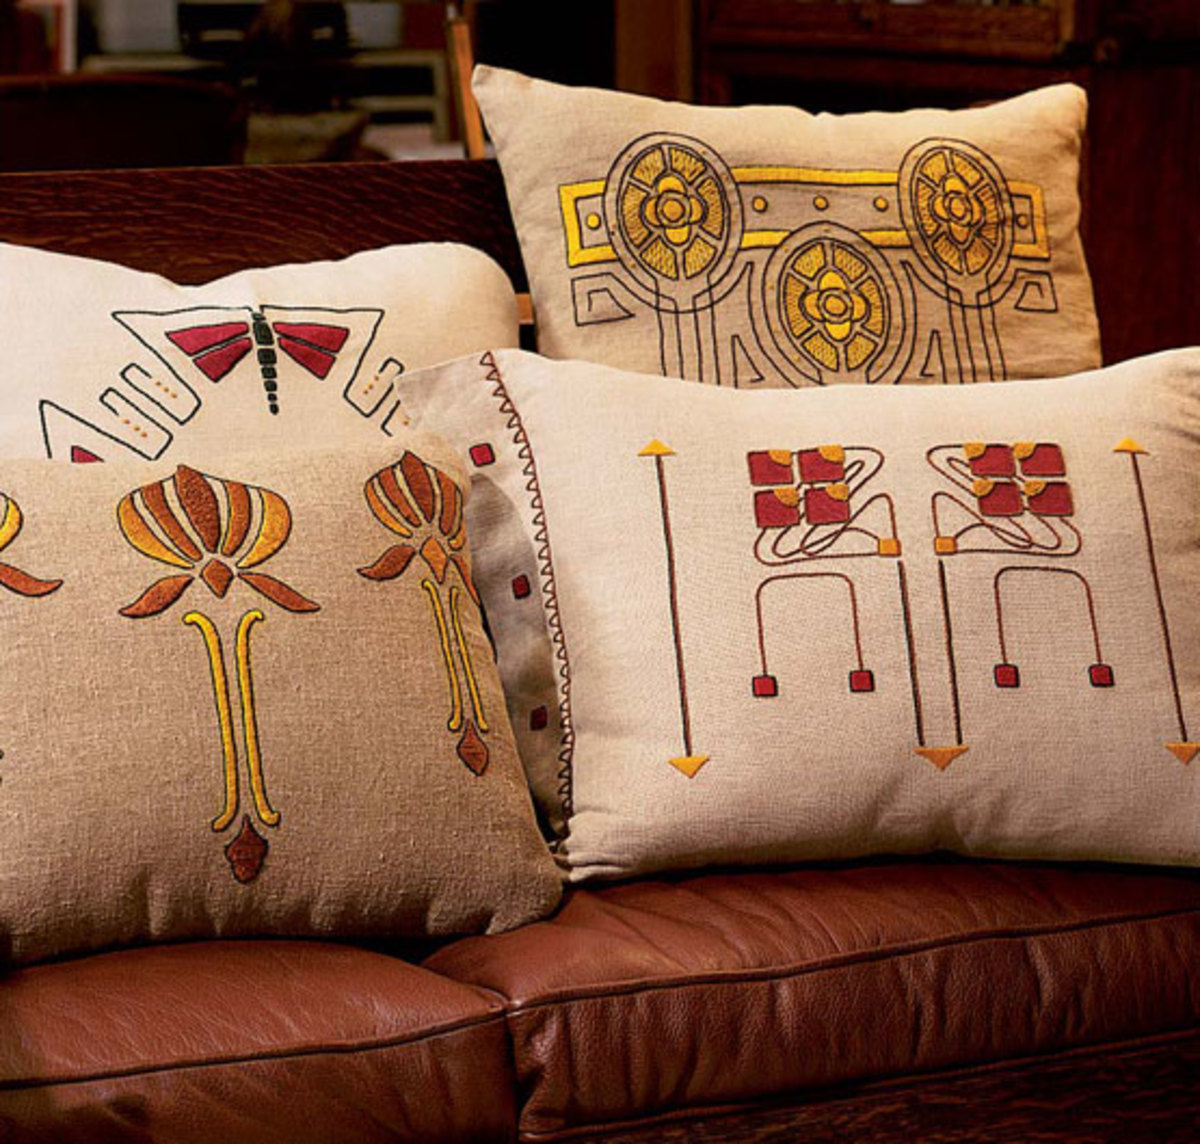 Vintage and new together: the 'Dragonfly' and 'Checkerberry' designs are new from Arts & Crafts Period Textiles, lotus blossom and yellow medallion designs are old. Photo by William Wright.